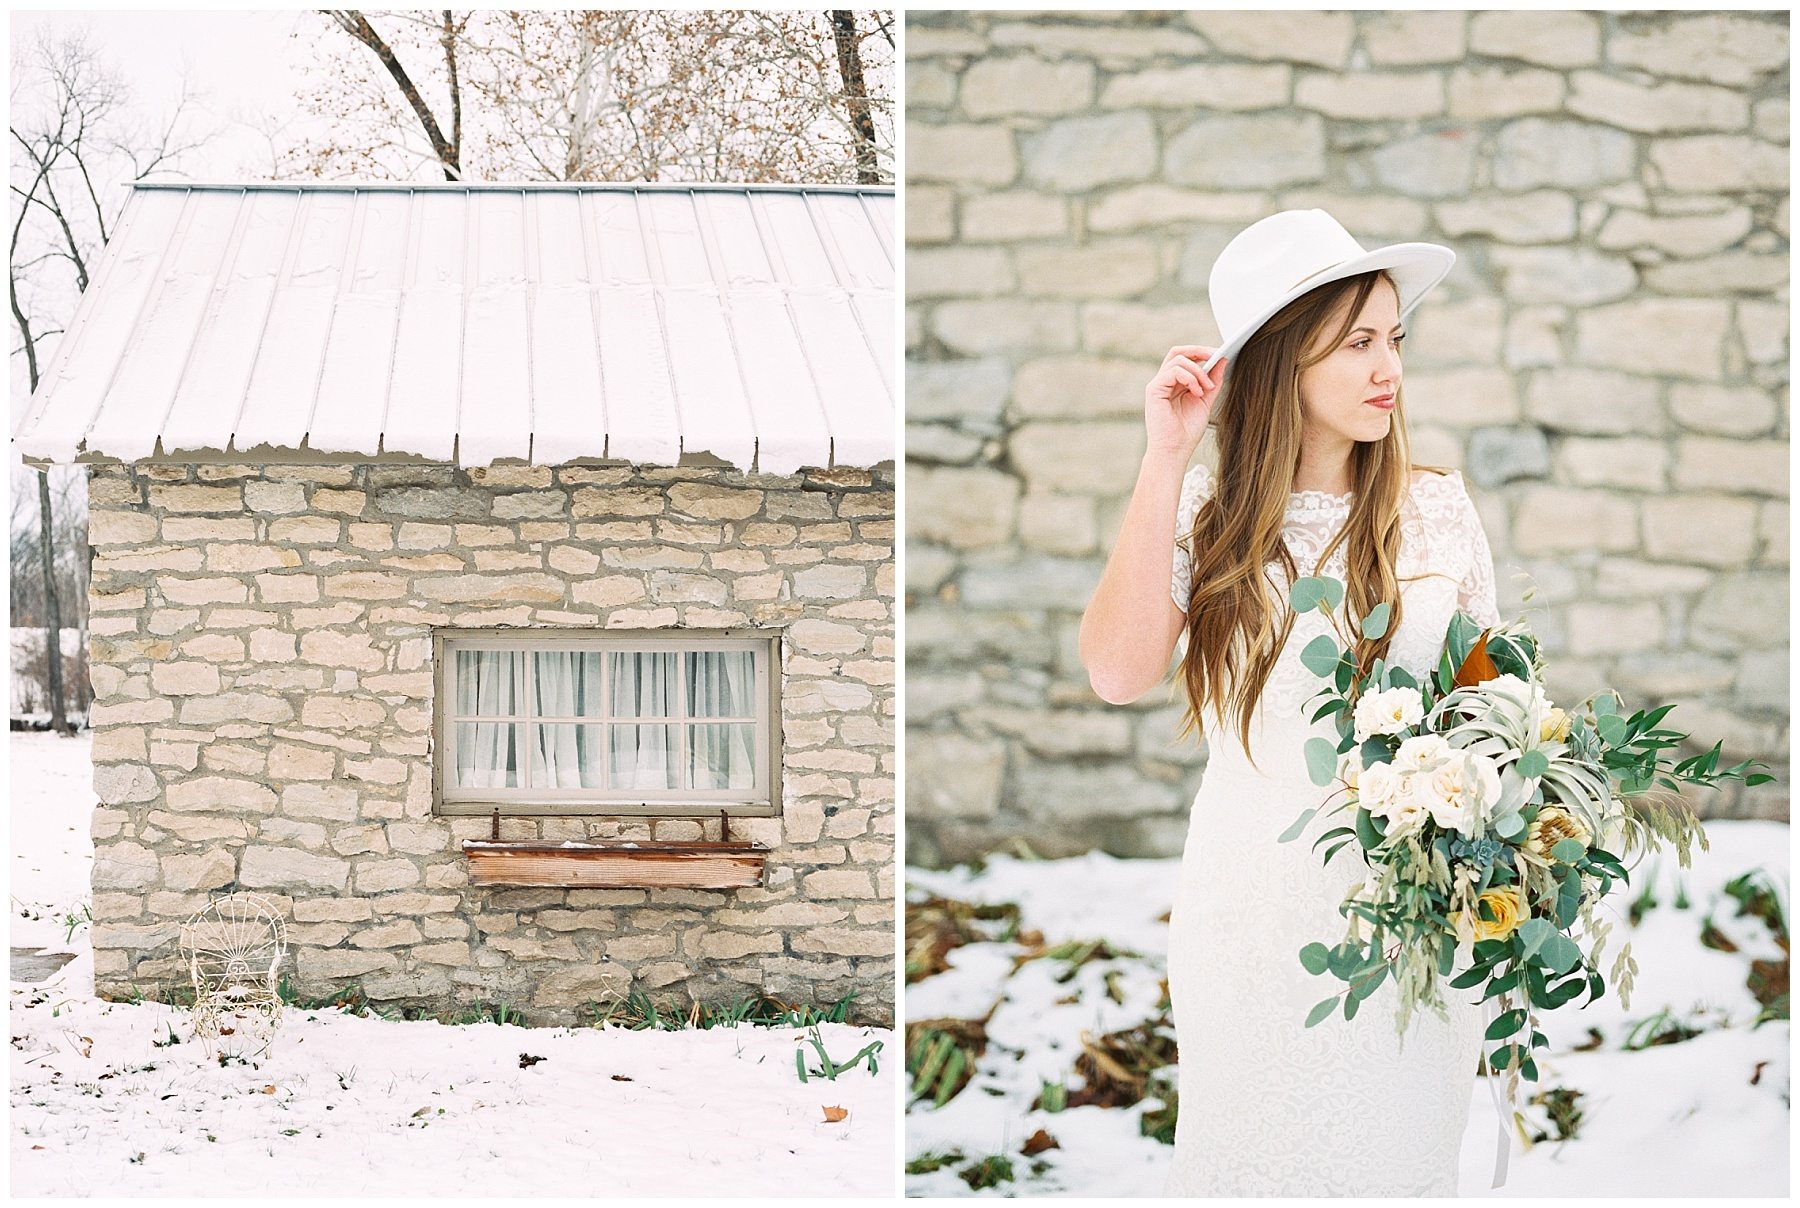 Snowy Winter Wedding at Wildcliff Events Lake With Earthy Jewel Tones and Organic Refined Style by Kelsi Kliethermes Photography Kansas City Missouri Wedding Photographer_0101.jpg